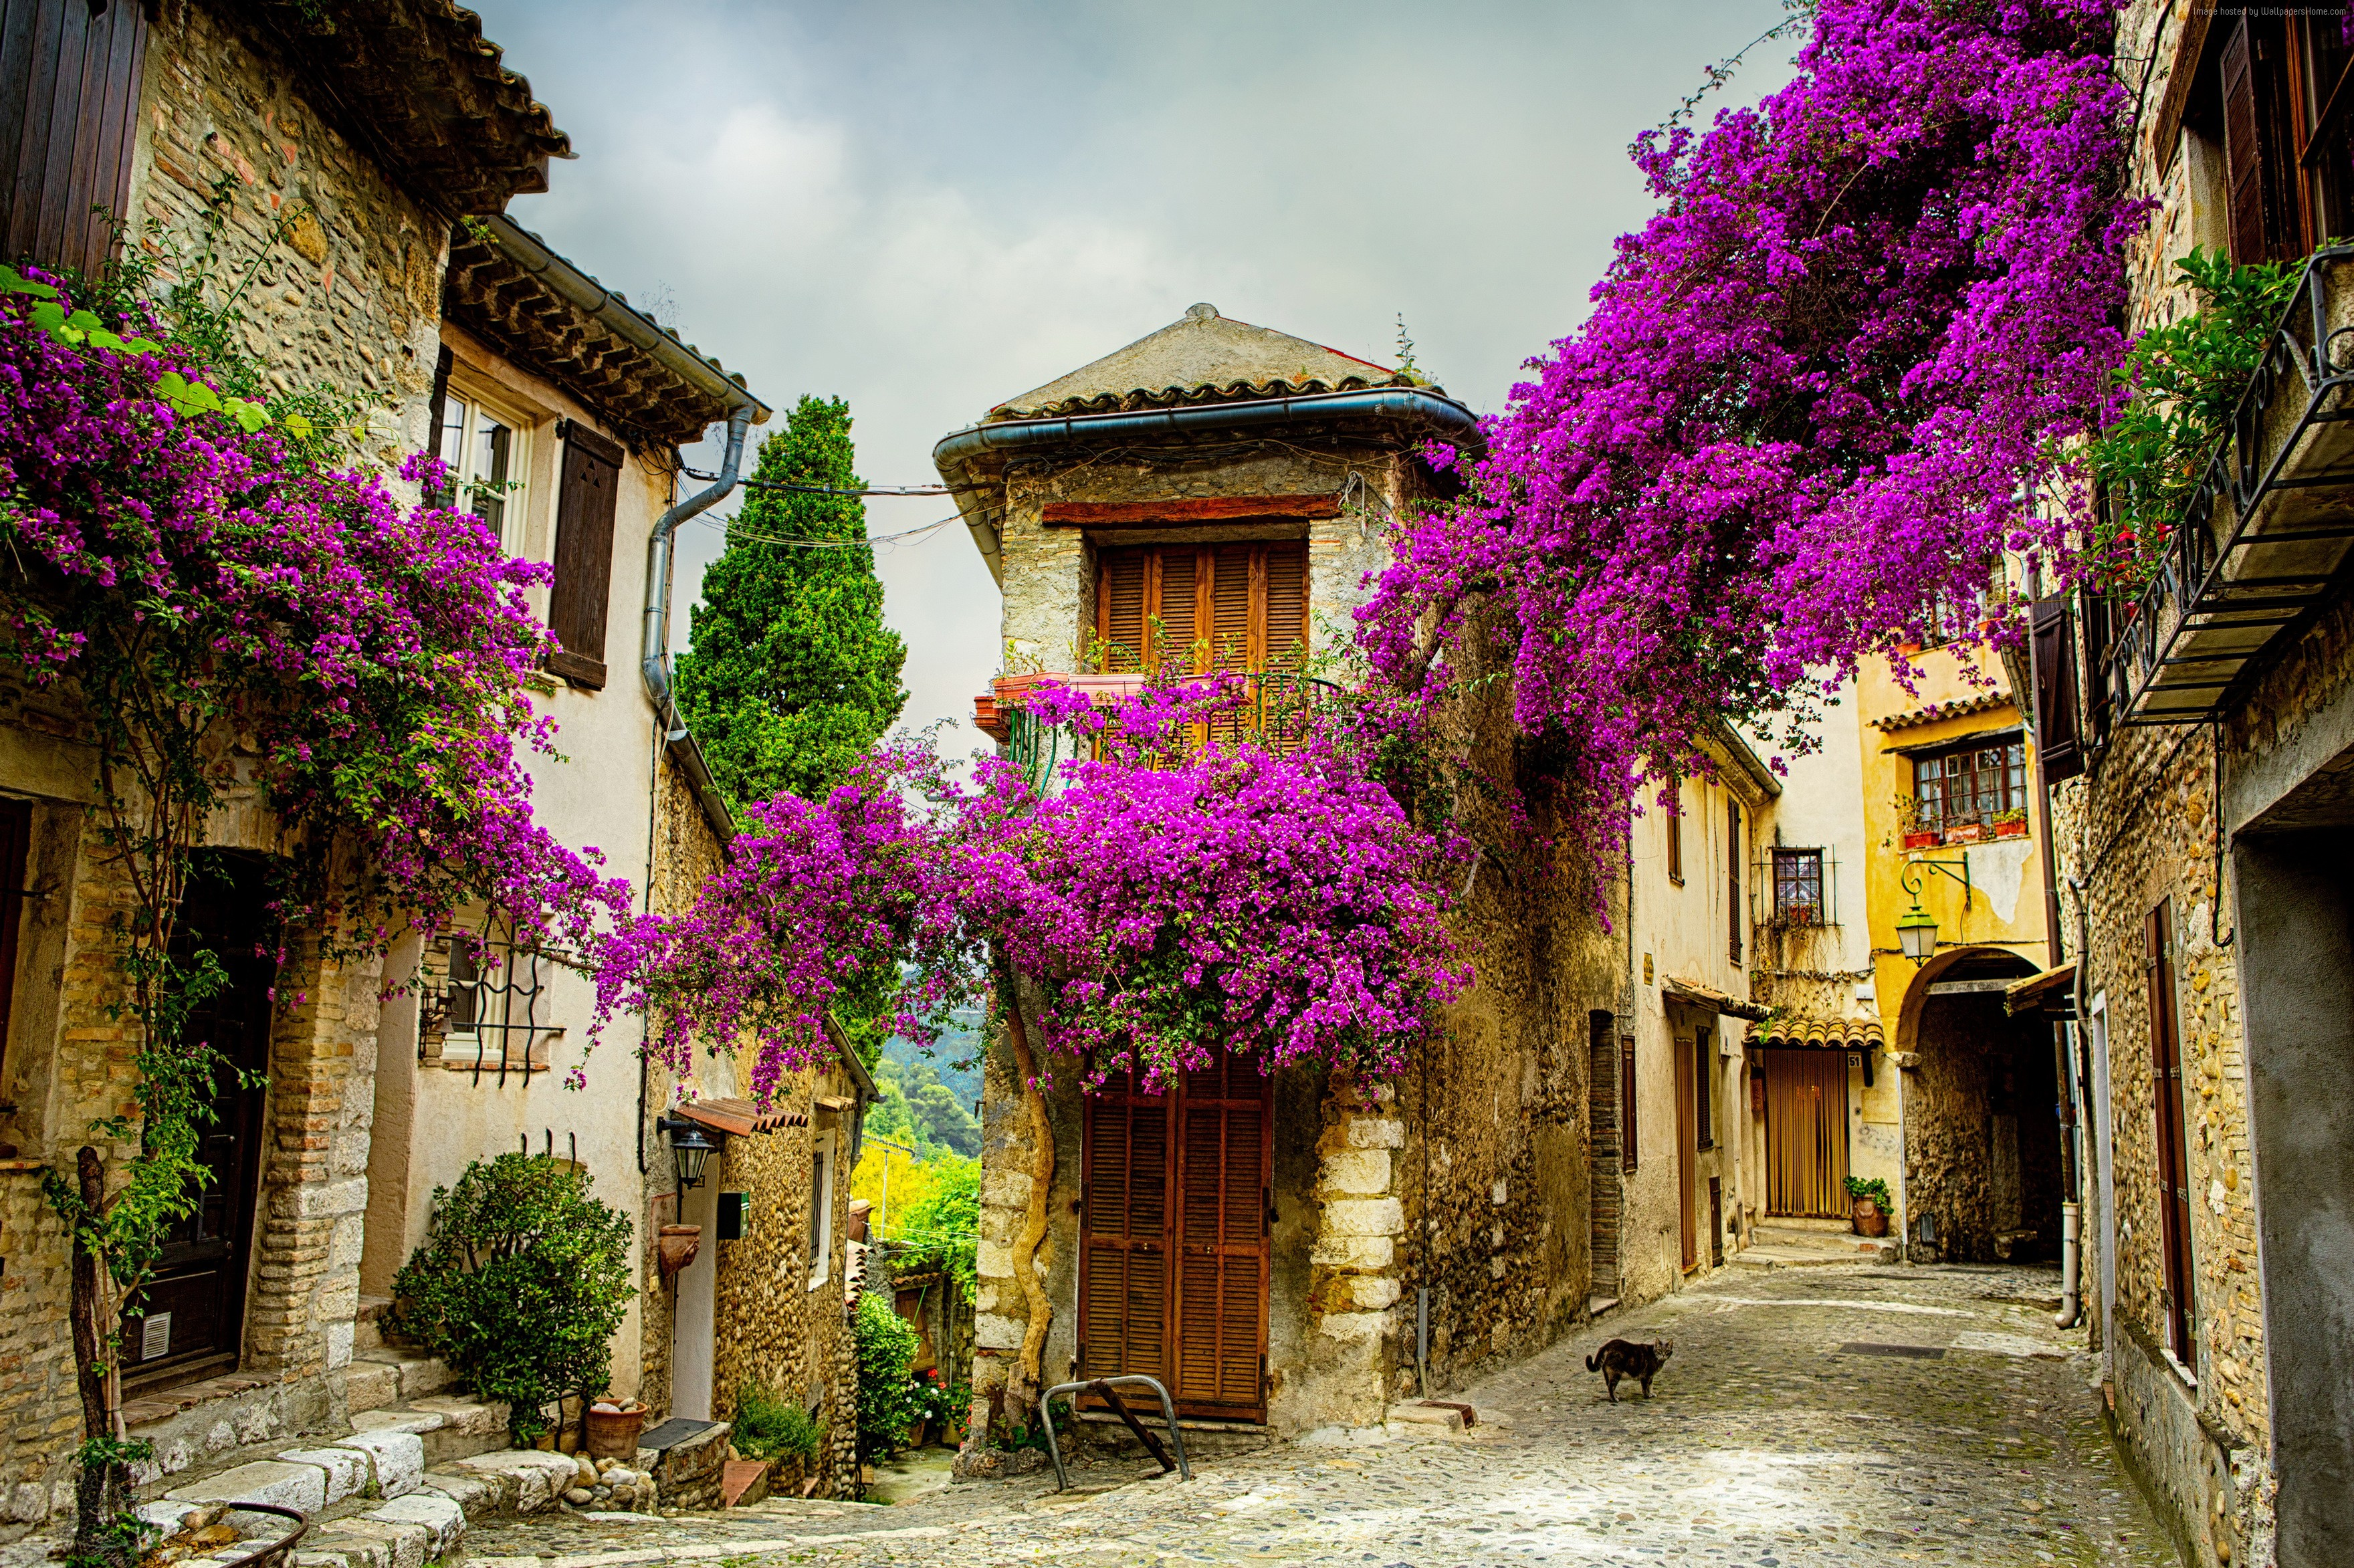 Street in Provence France HD Wallpaper Background Image 3520x2345